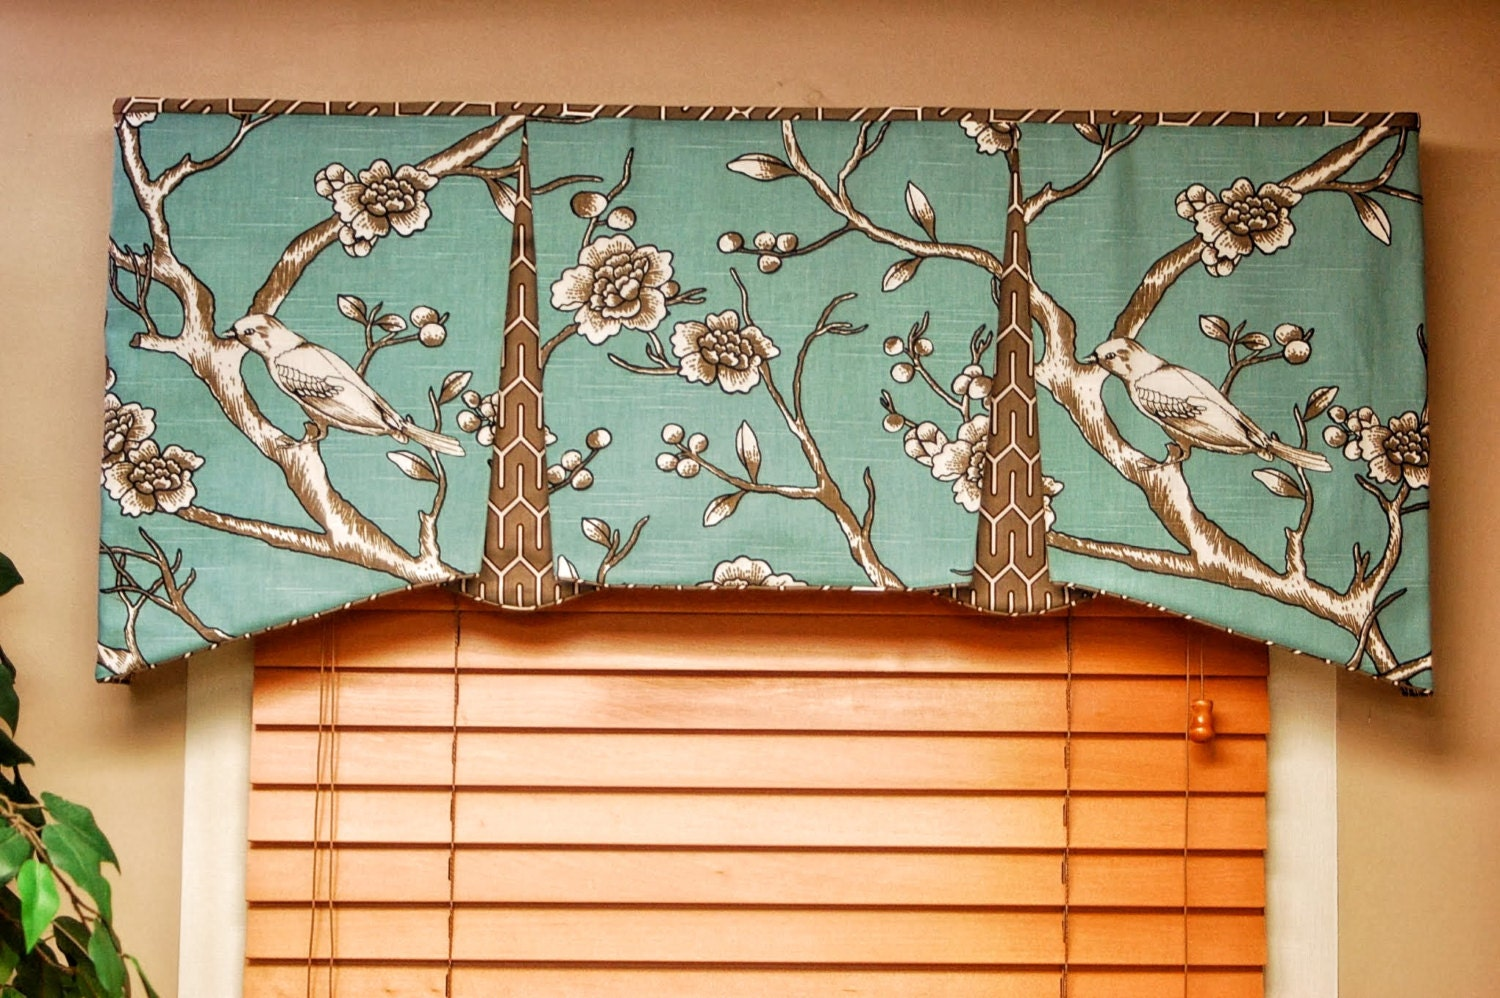 waverly how size valance made for curtains large stupendous swag to window room living of custom valances make